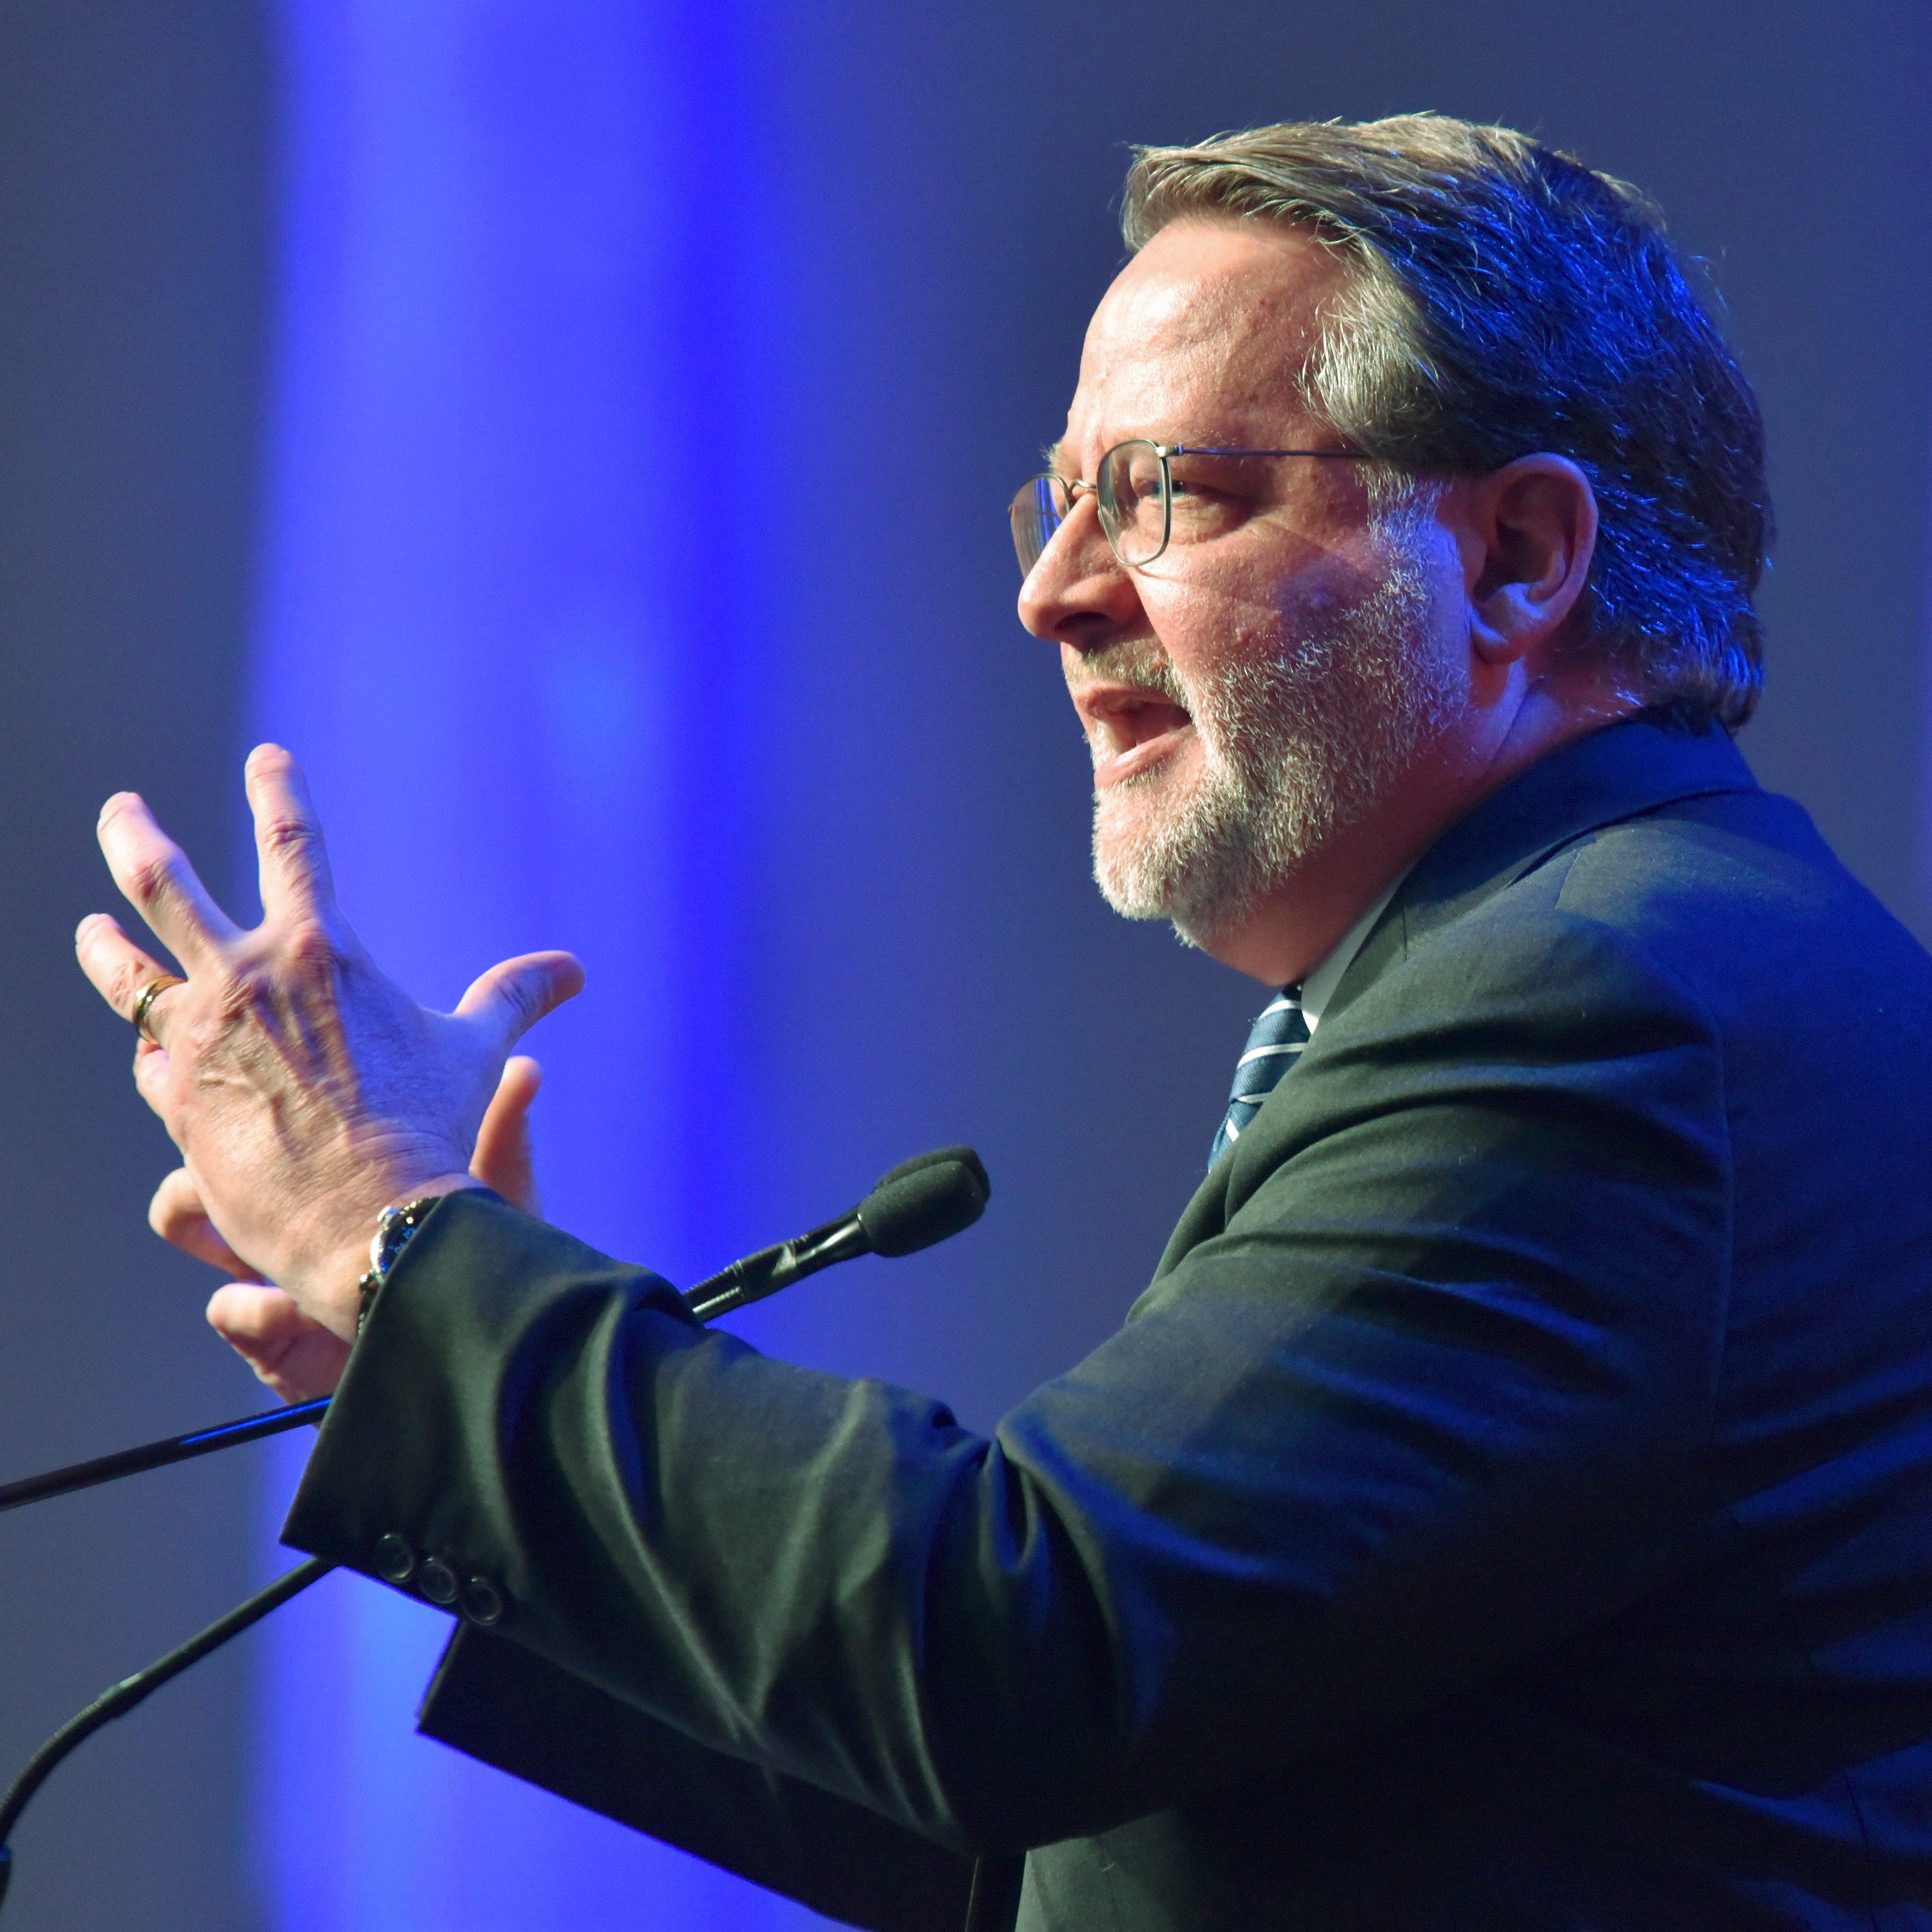 Peters supports 'aspects' of Green New Deal